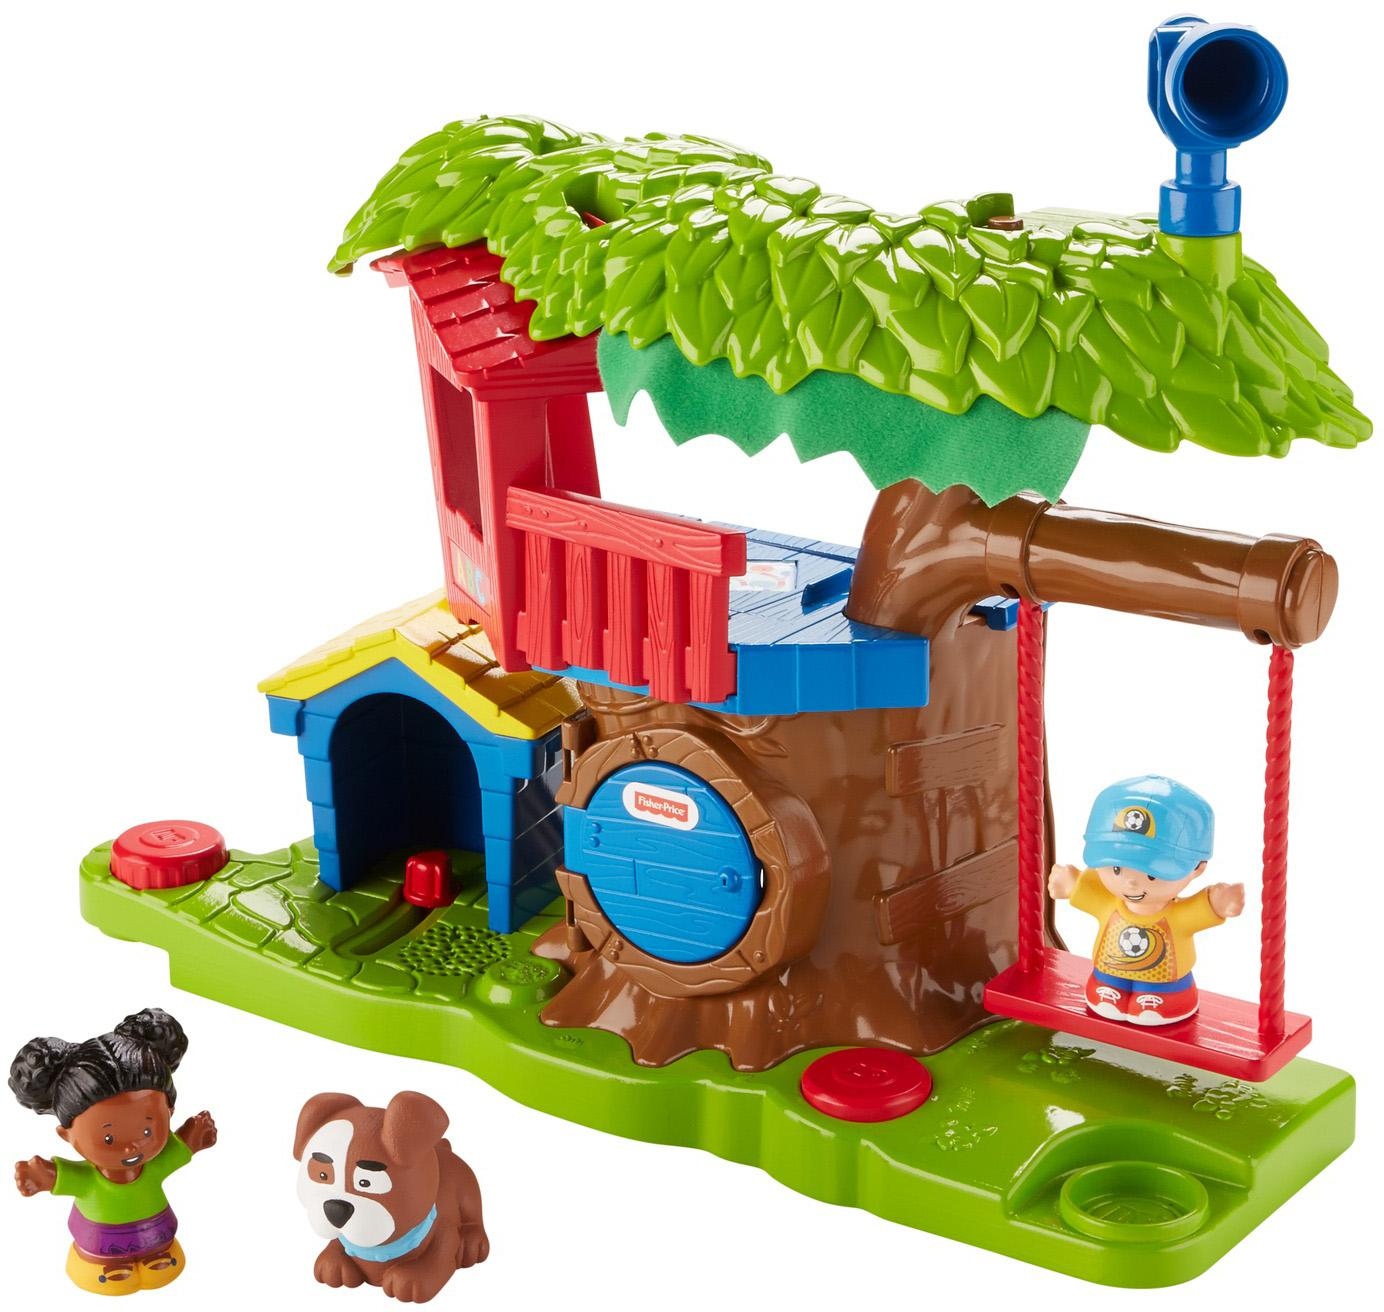 Amazon.com: Fisher-Price Little People Swing & Share ...